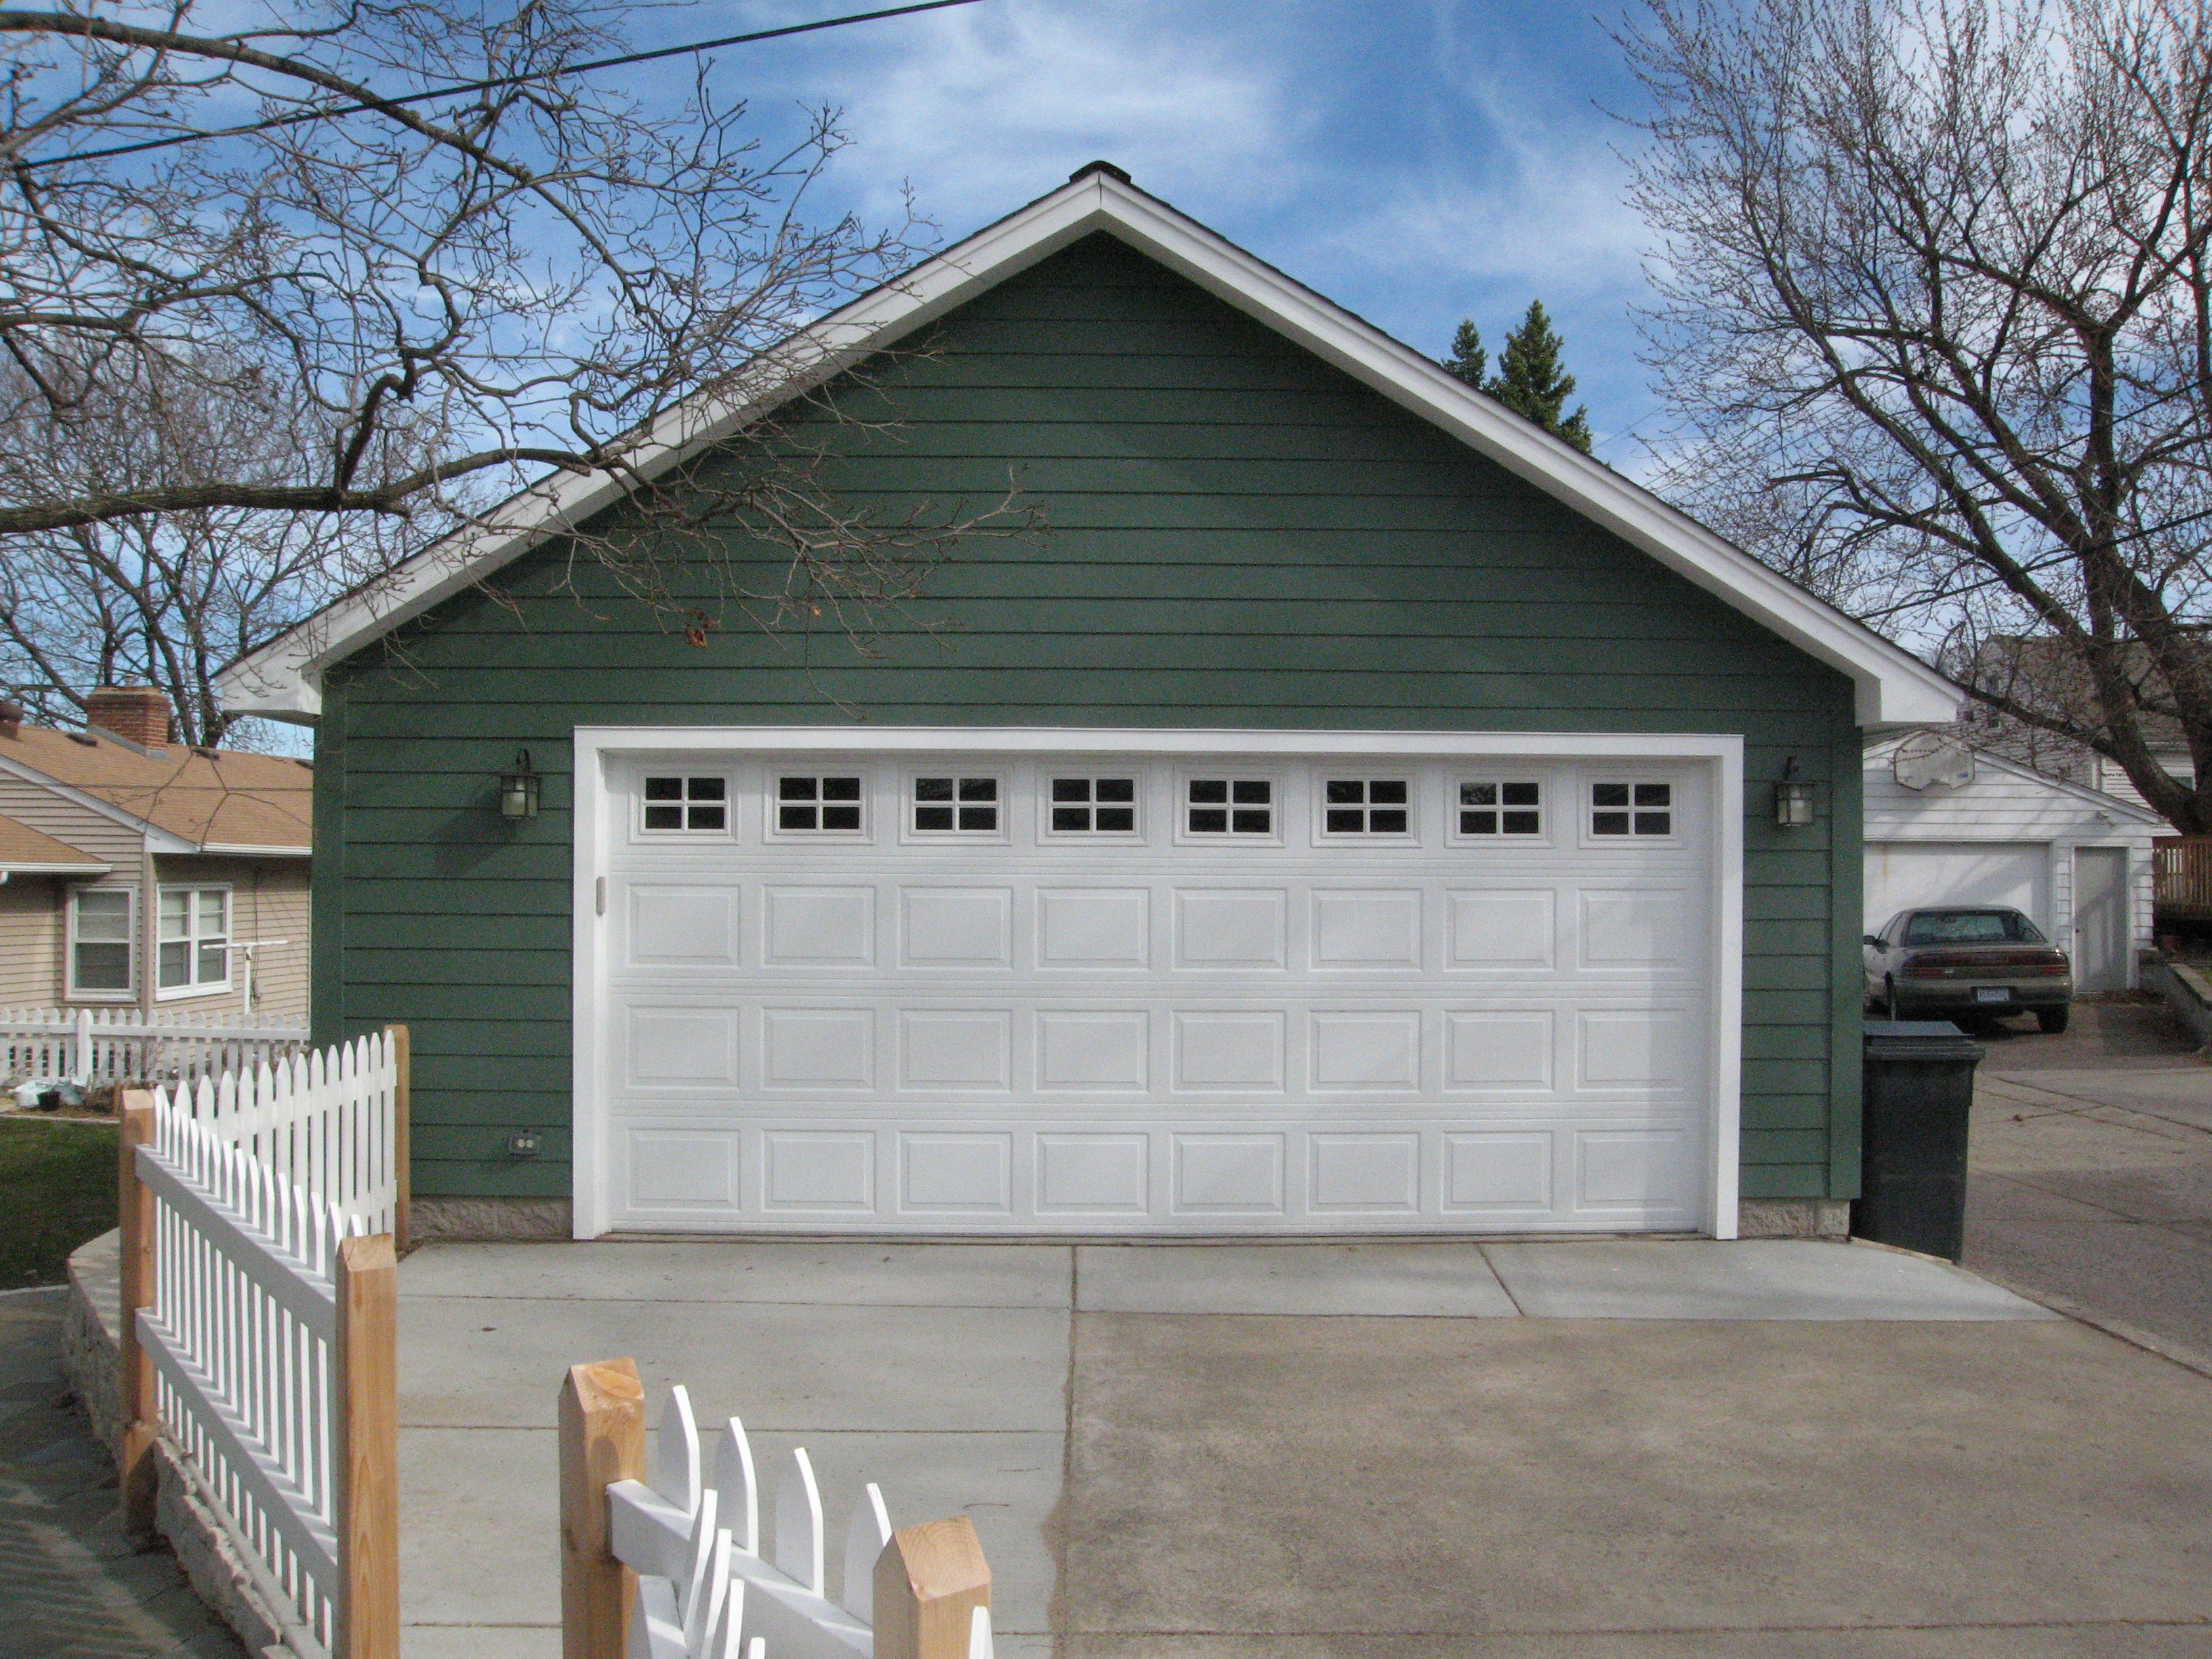 Free storage truss garage plans for 2 car garage design ideas